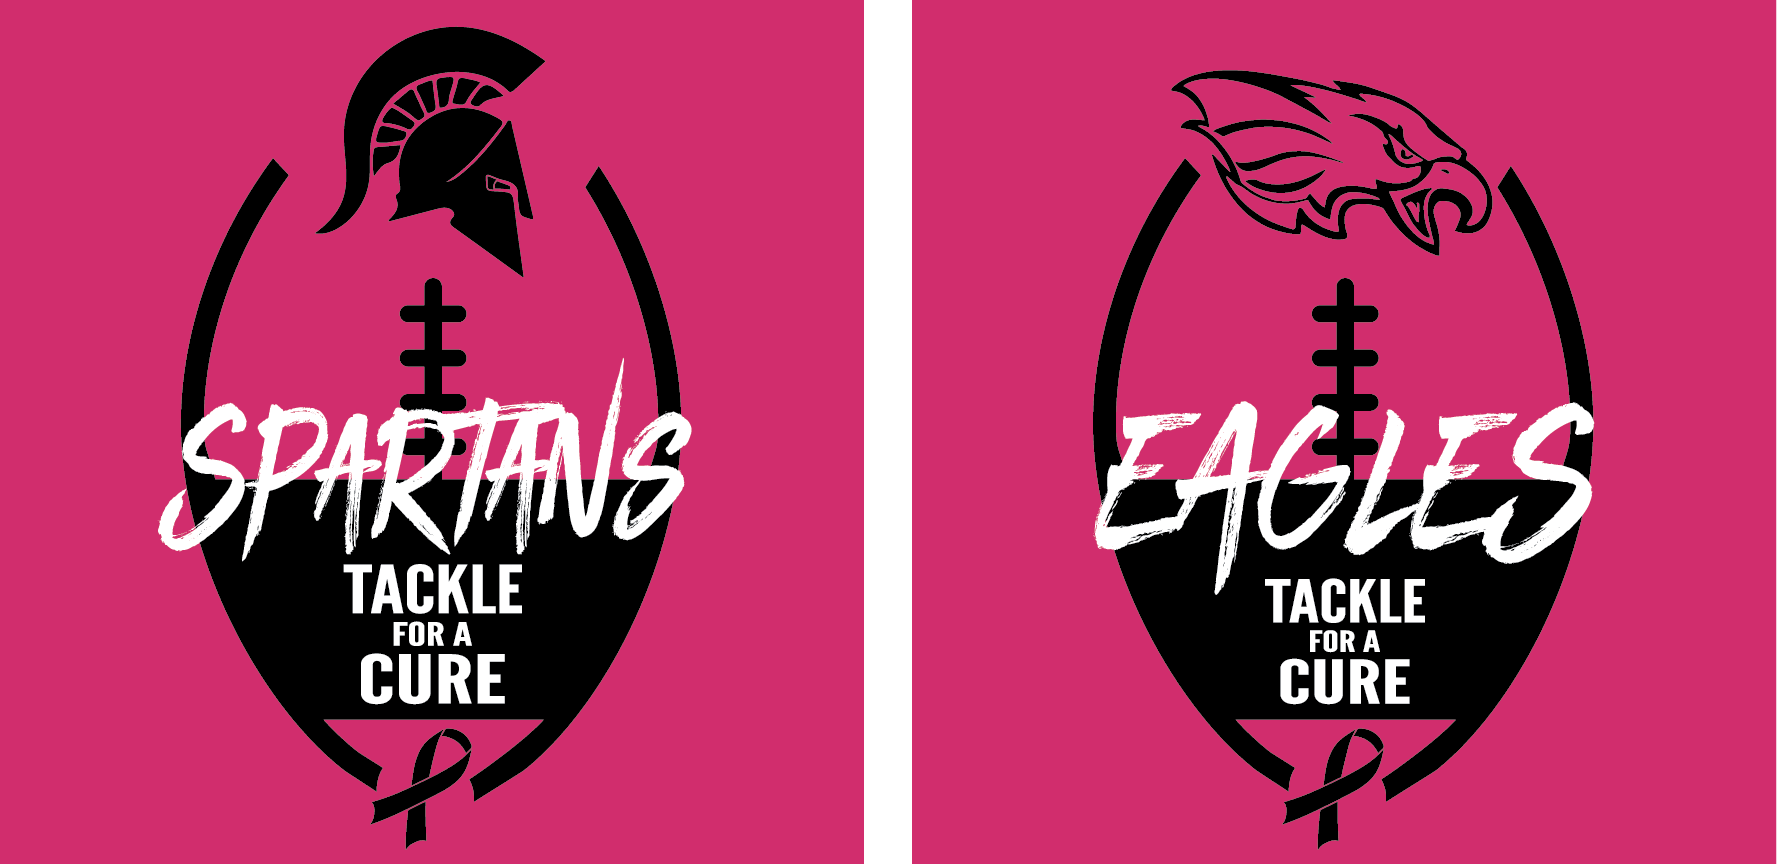 EMC TACKLE FOR THE CURE